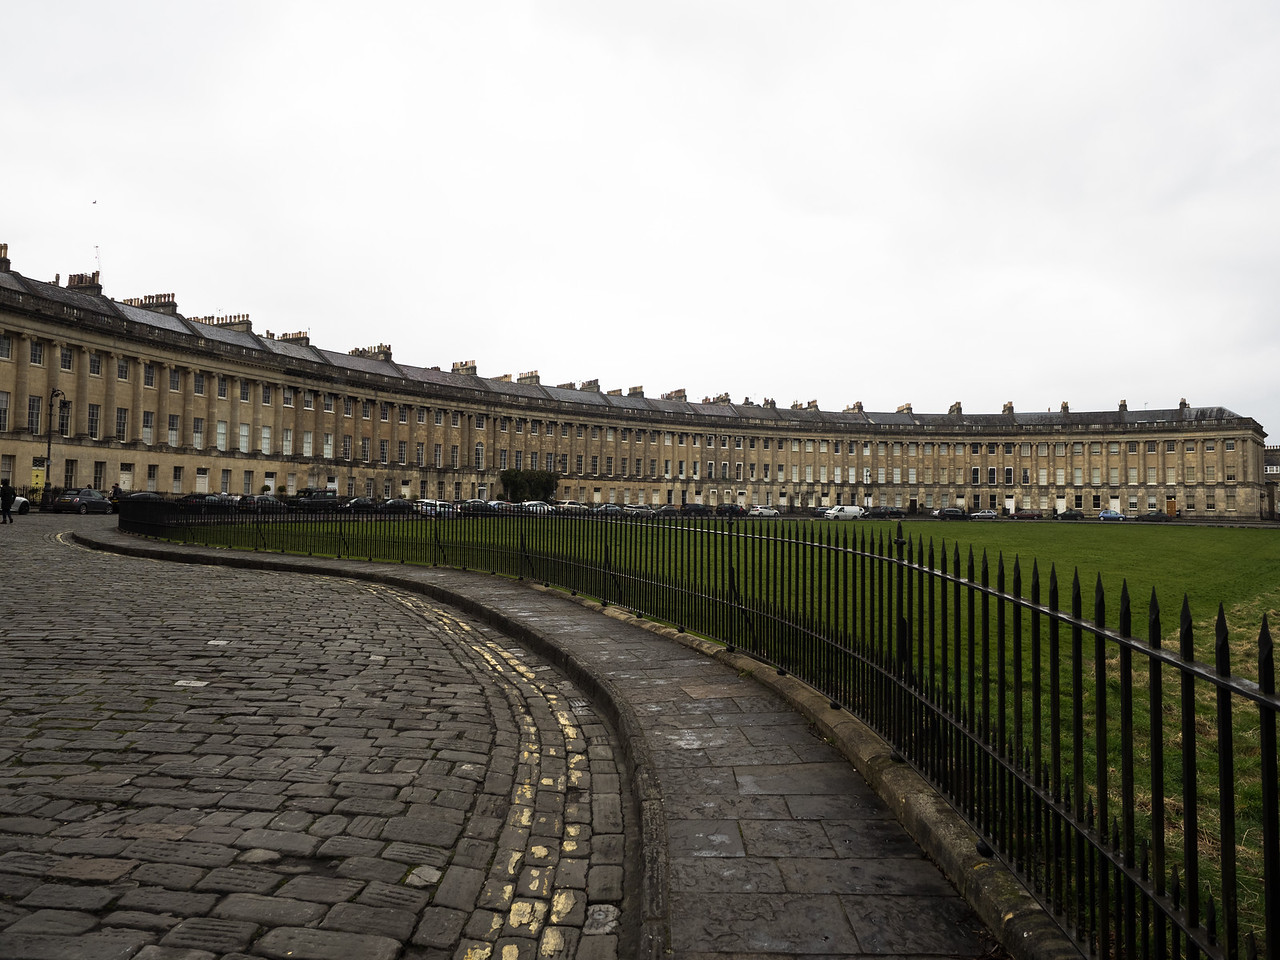 The wonderful curves of the Royal Crescent.